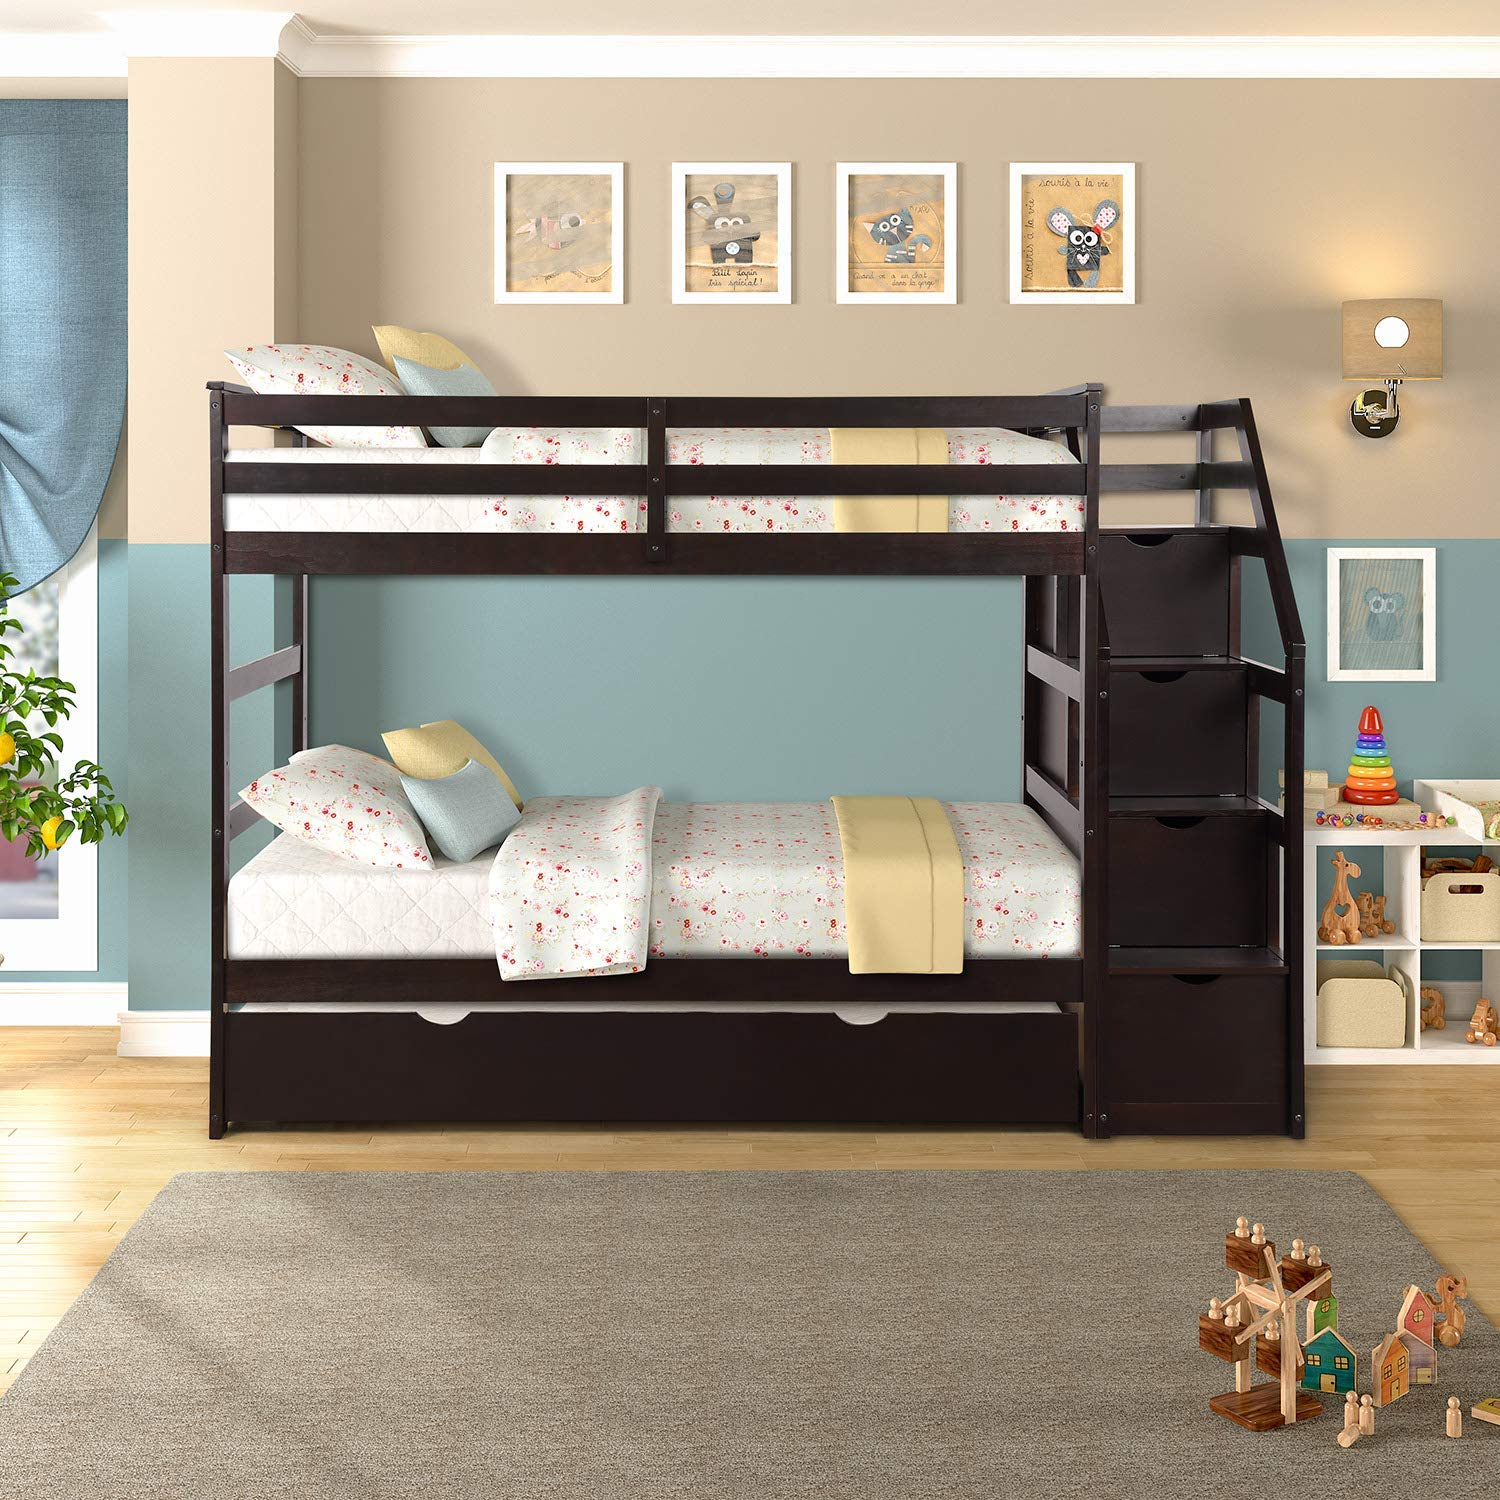 ALI VIRGO Solid Wood Bed Hardwood Twin Bunk Frame with Staircase and 4 Storage Drawers, Natural Finish, Espresso